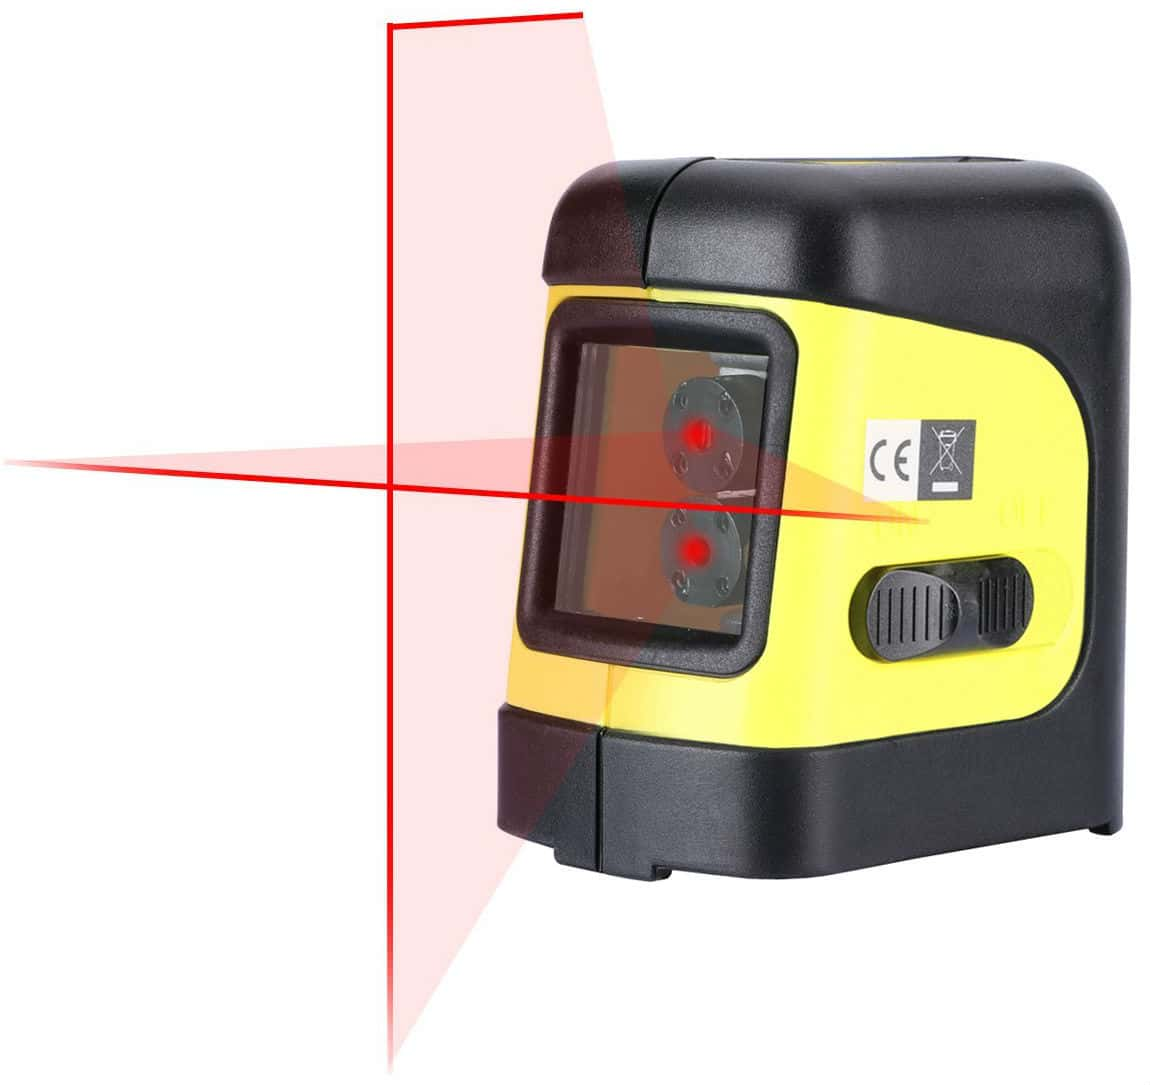 Firecore Self-Leveling Horizontal/Vertical Cross-Line Laser Level with Magnetic Bracket